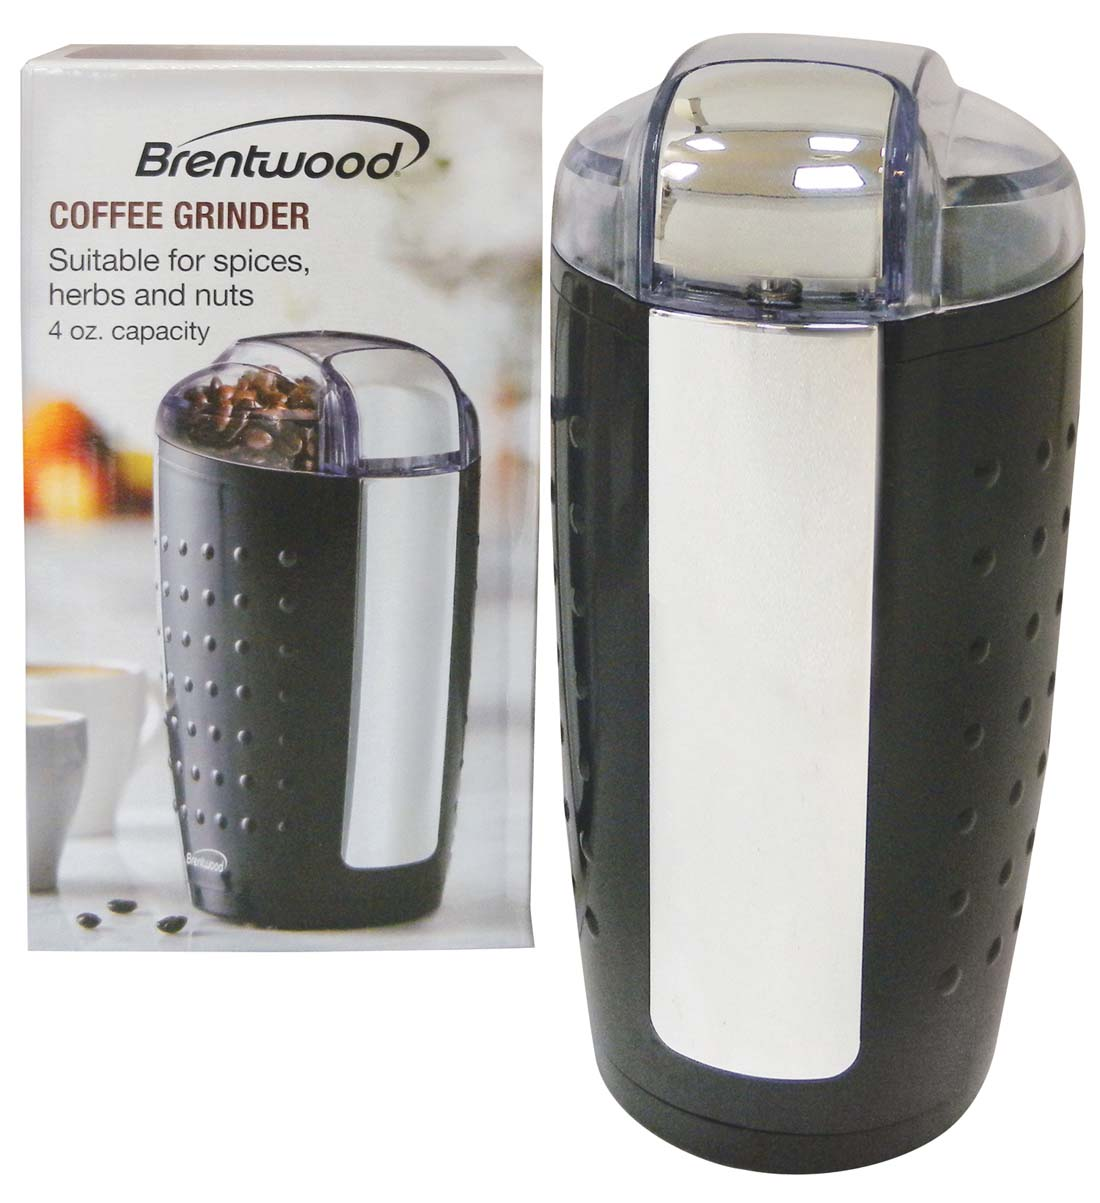 View BRENTWOOD COFFEE GRINDER 4 OZ. CETL LISTED